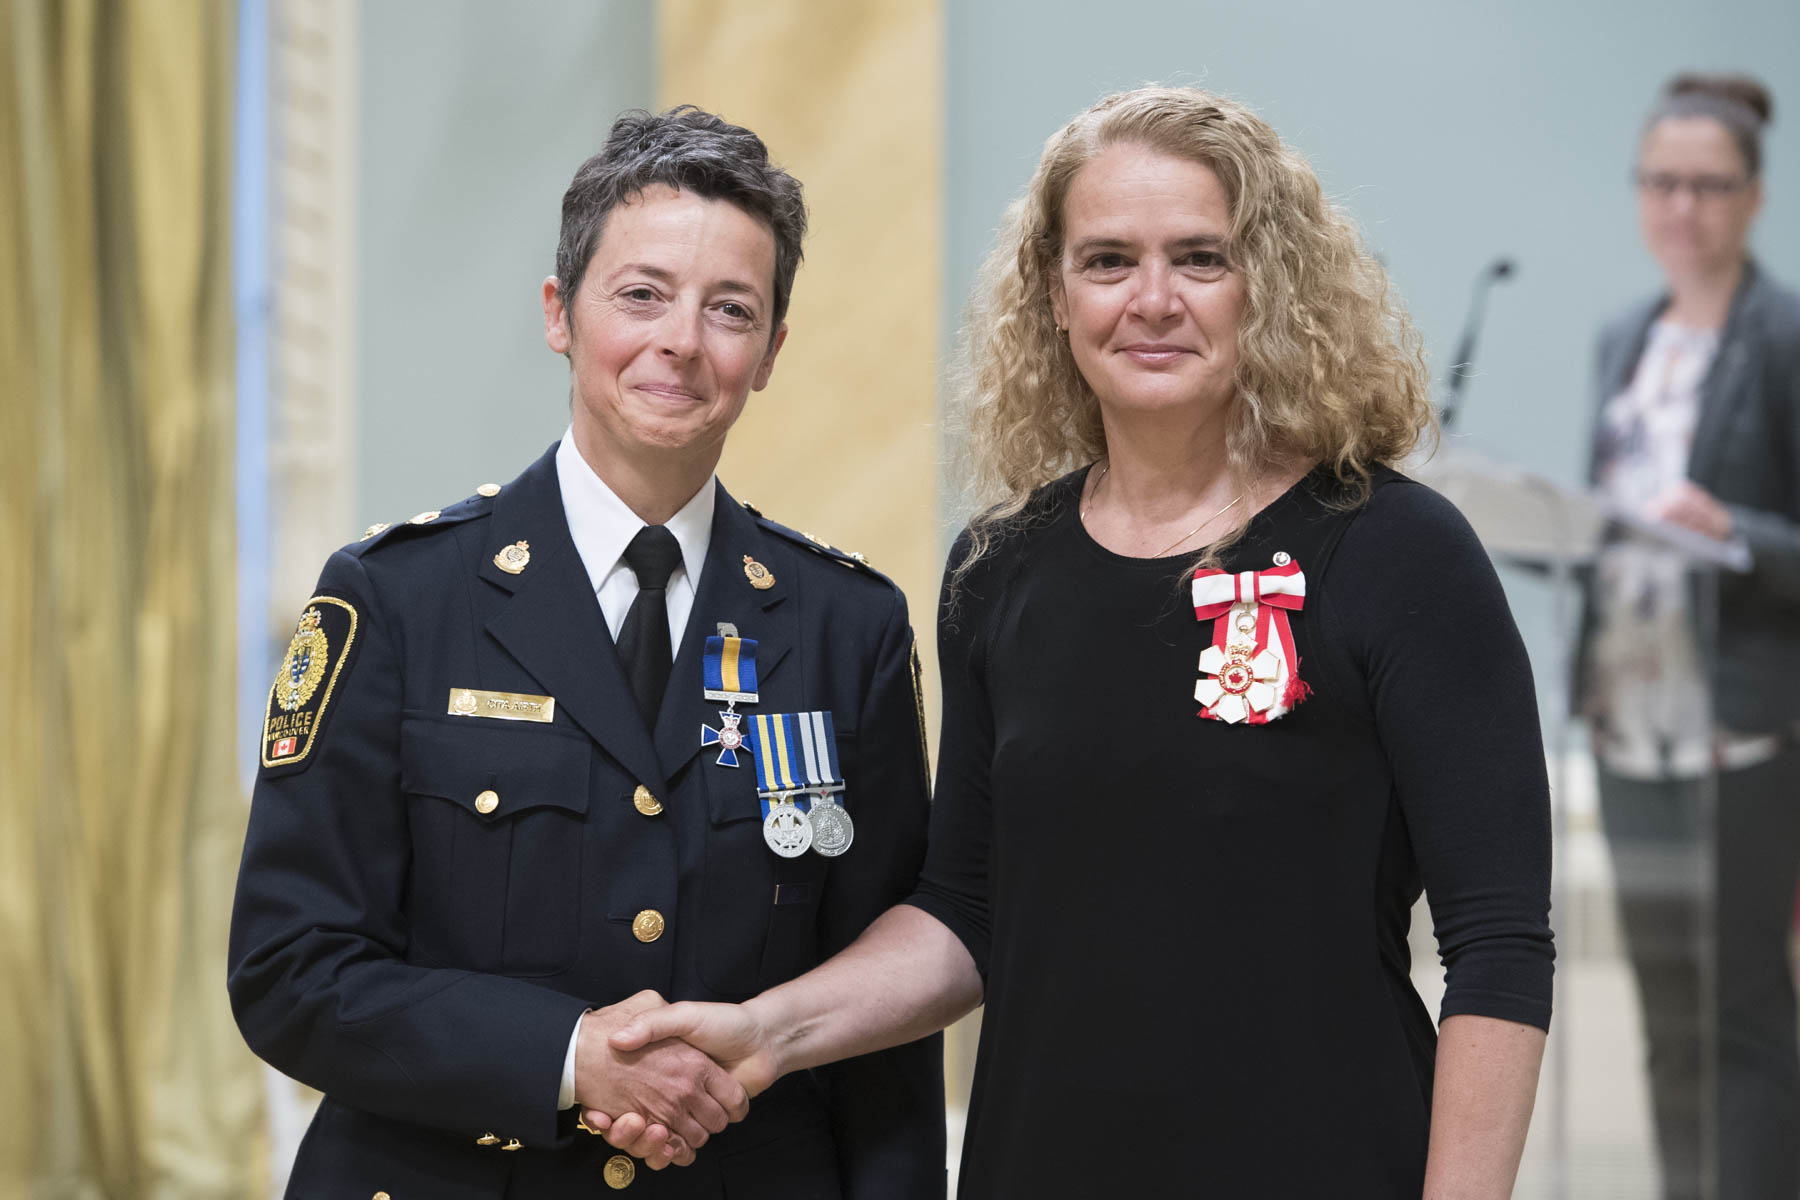 The Governor General presented the Order of Merit of the Police Forces to Superintendent Cita Carmen Airth. She has been a distinguished member of the Vancouver Police Department for over 20 years. A natural leader and mentor, she has developed innovative strategies to promote women's rights within her community.